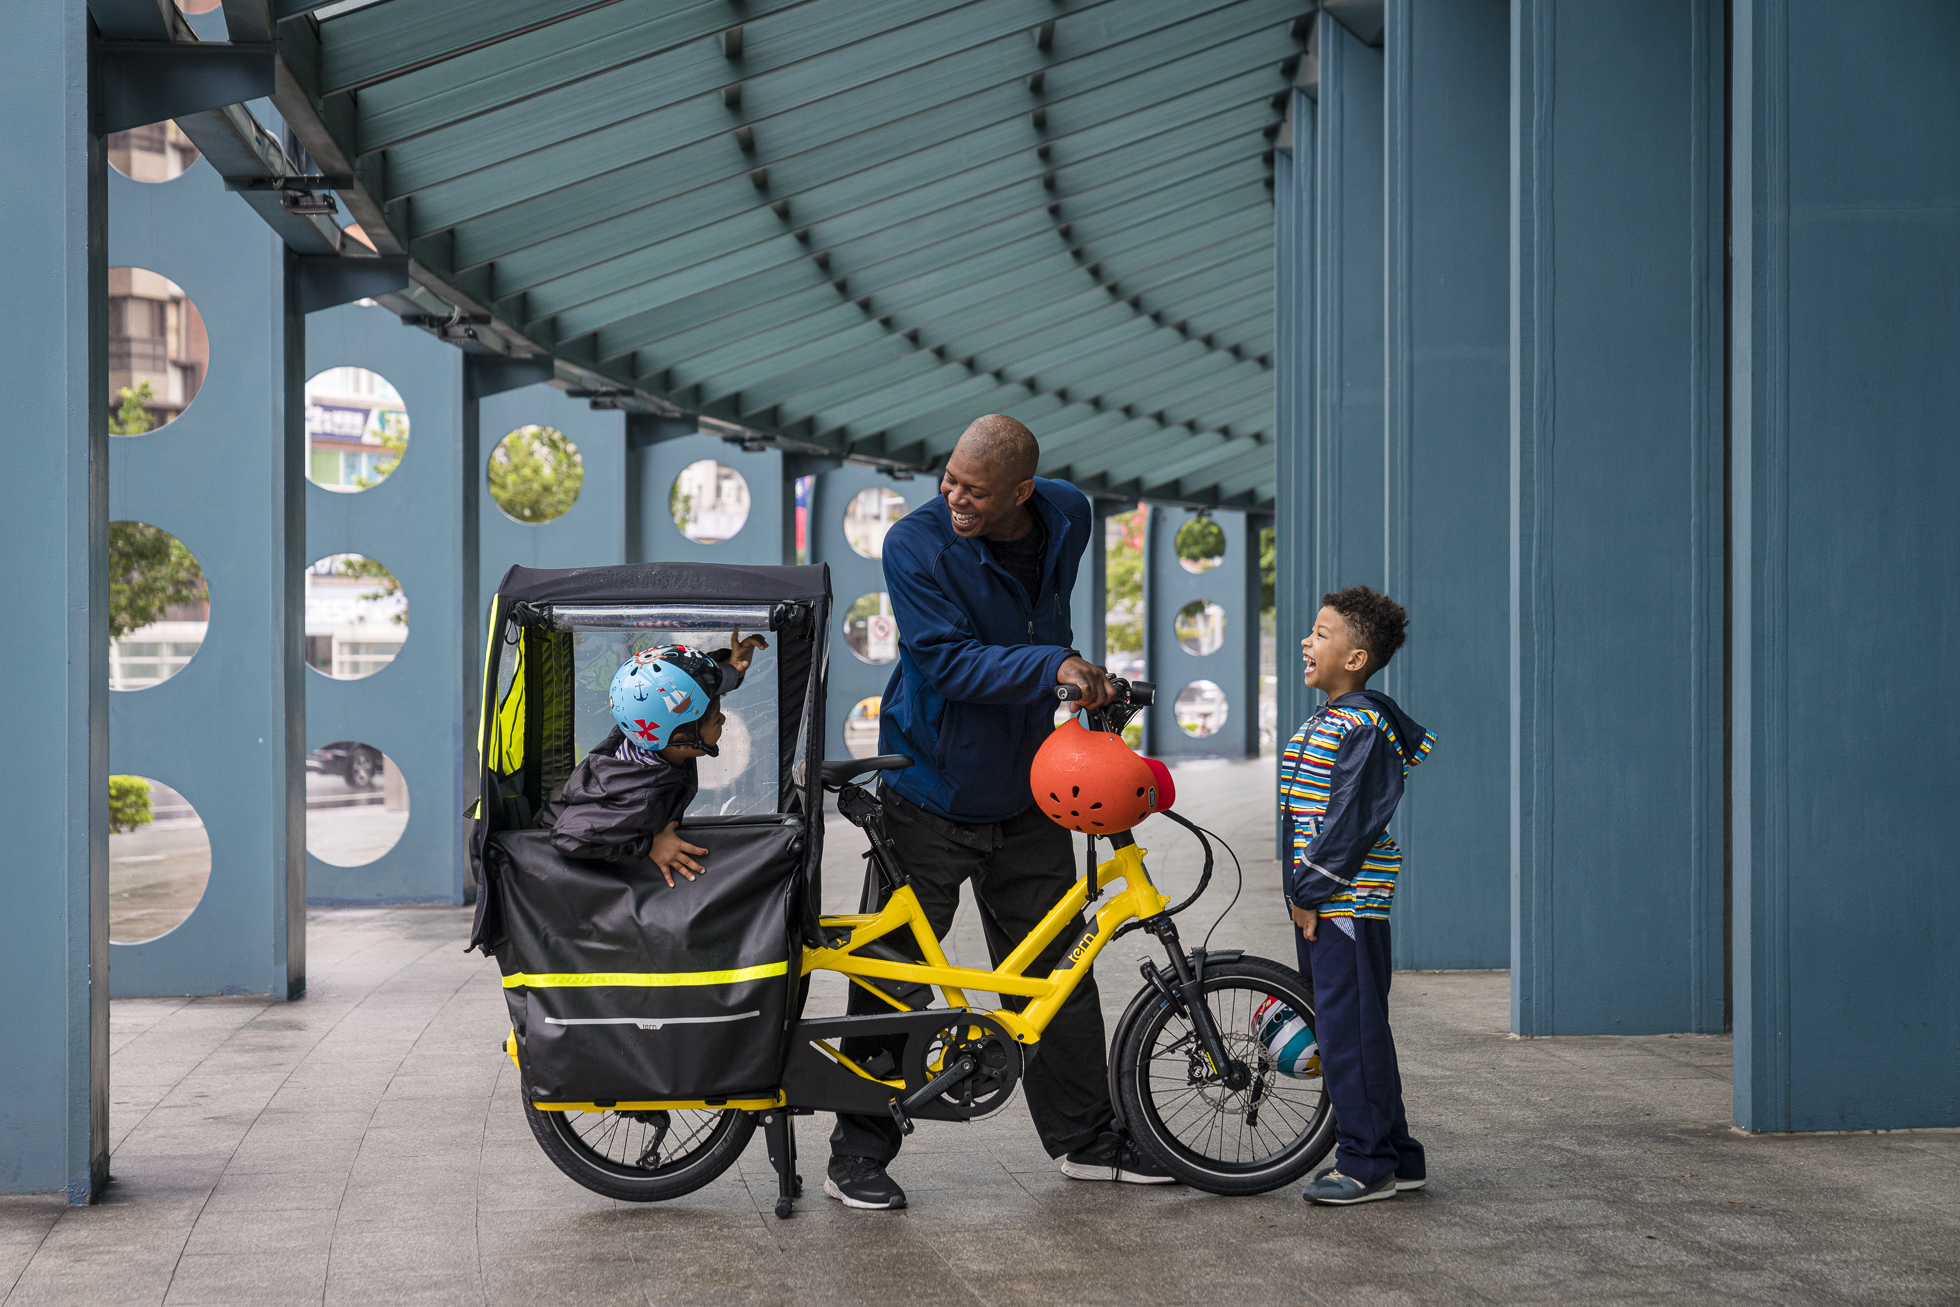 Tern Launches New Modular Accessories for Kids and Cargo on the GSD